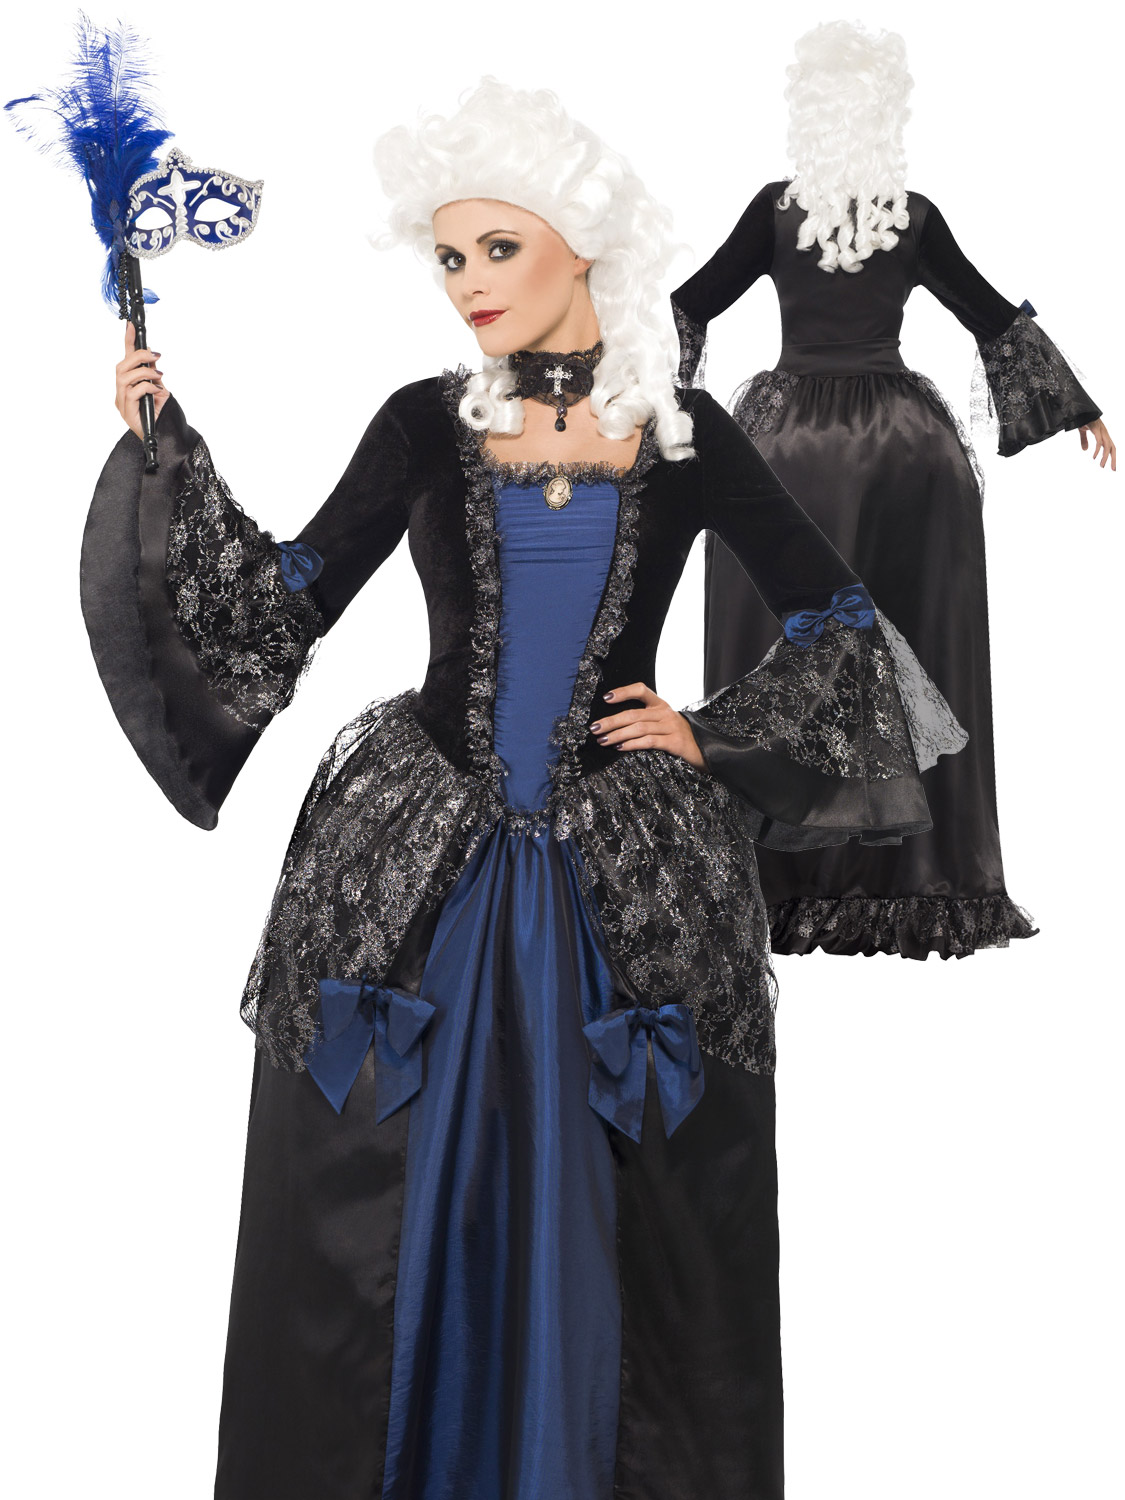 Ladies halloween masquerade costume womens baroque beauty fancy transform yourself into a baroque beauty with this stunning masquerade ball style costume ideal for any halloween party or event solutioingenieria Images